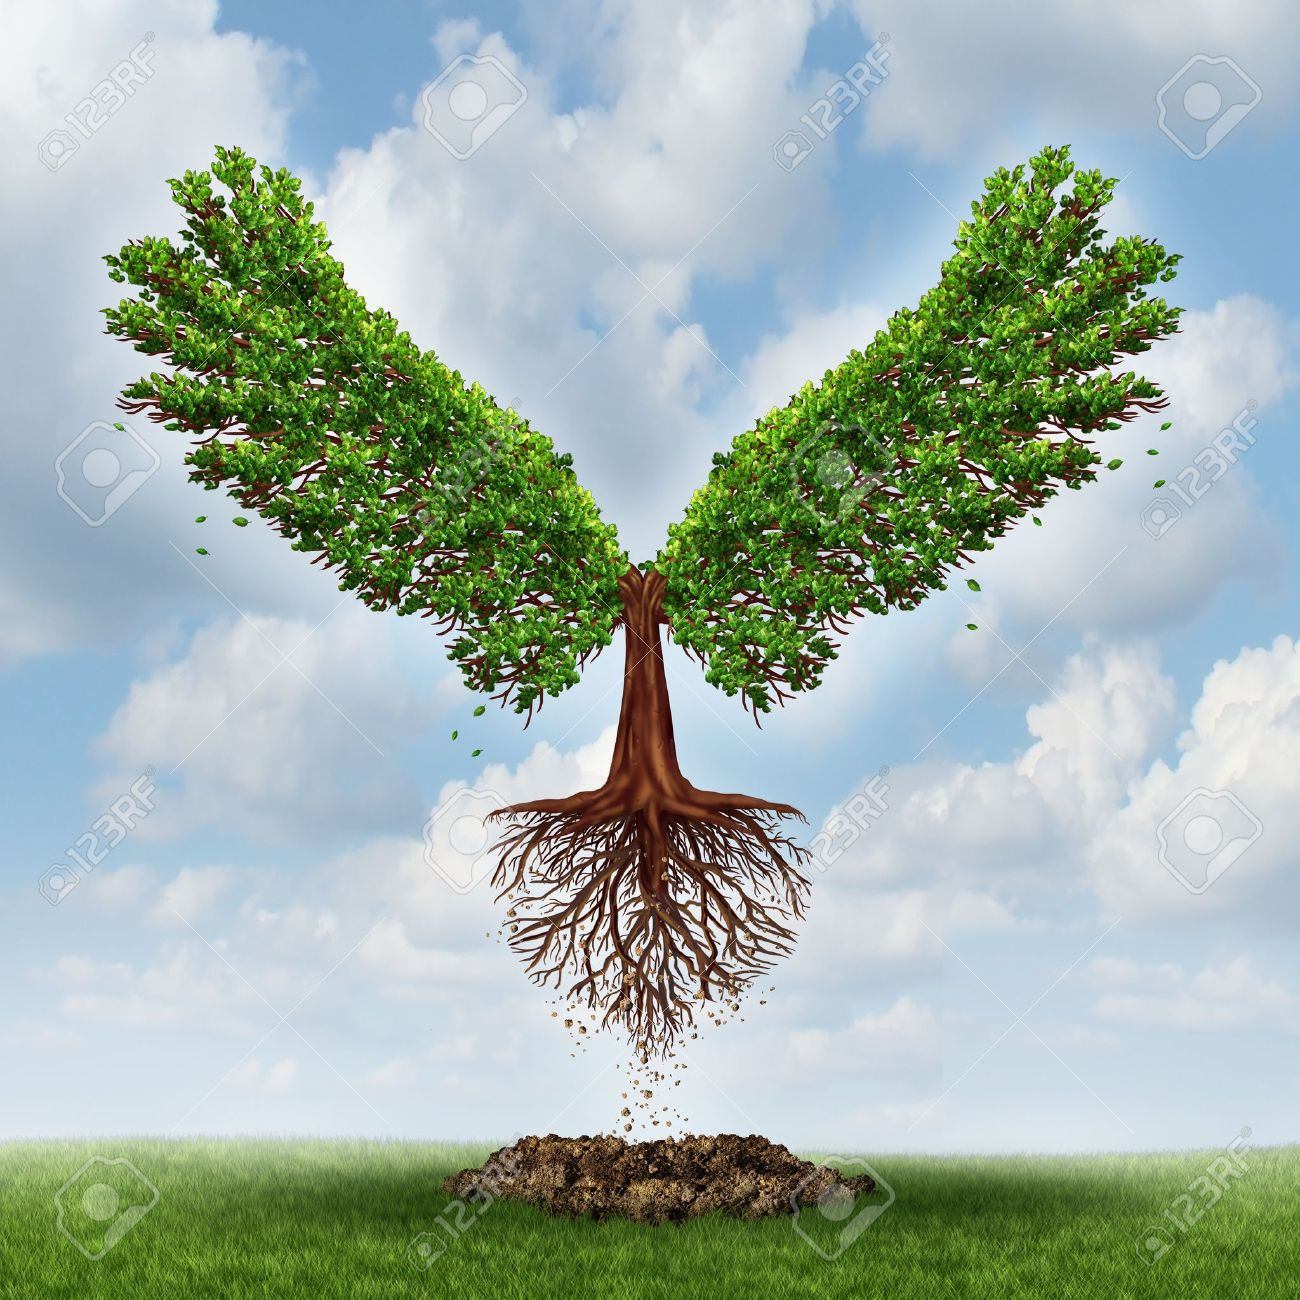 Moving up and the power of success with a growing  tree in the shape of wingsthat has emerged out of the ground and has taken flight upward to opportunity as a business concept of the evolution of successful leadership and strategic planning Stock Photo - 21743114